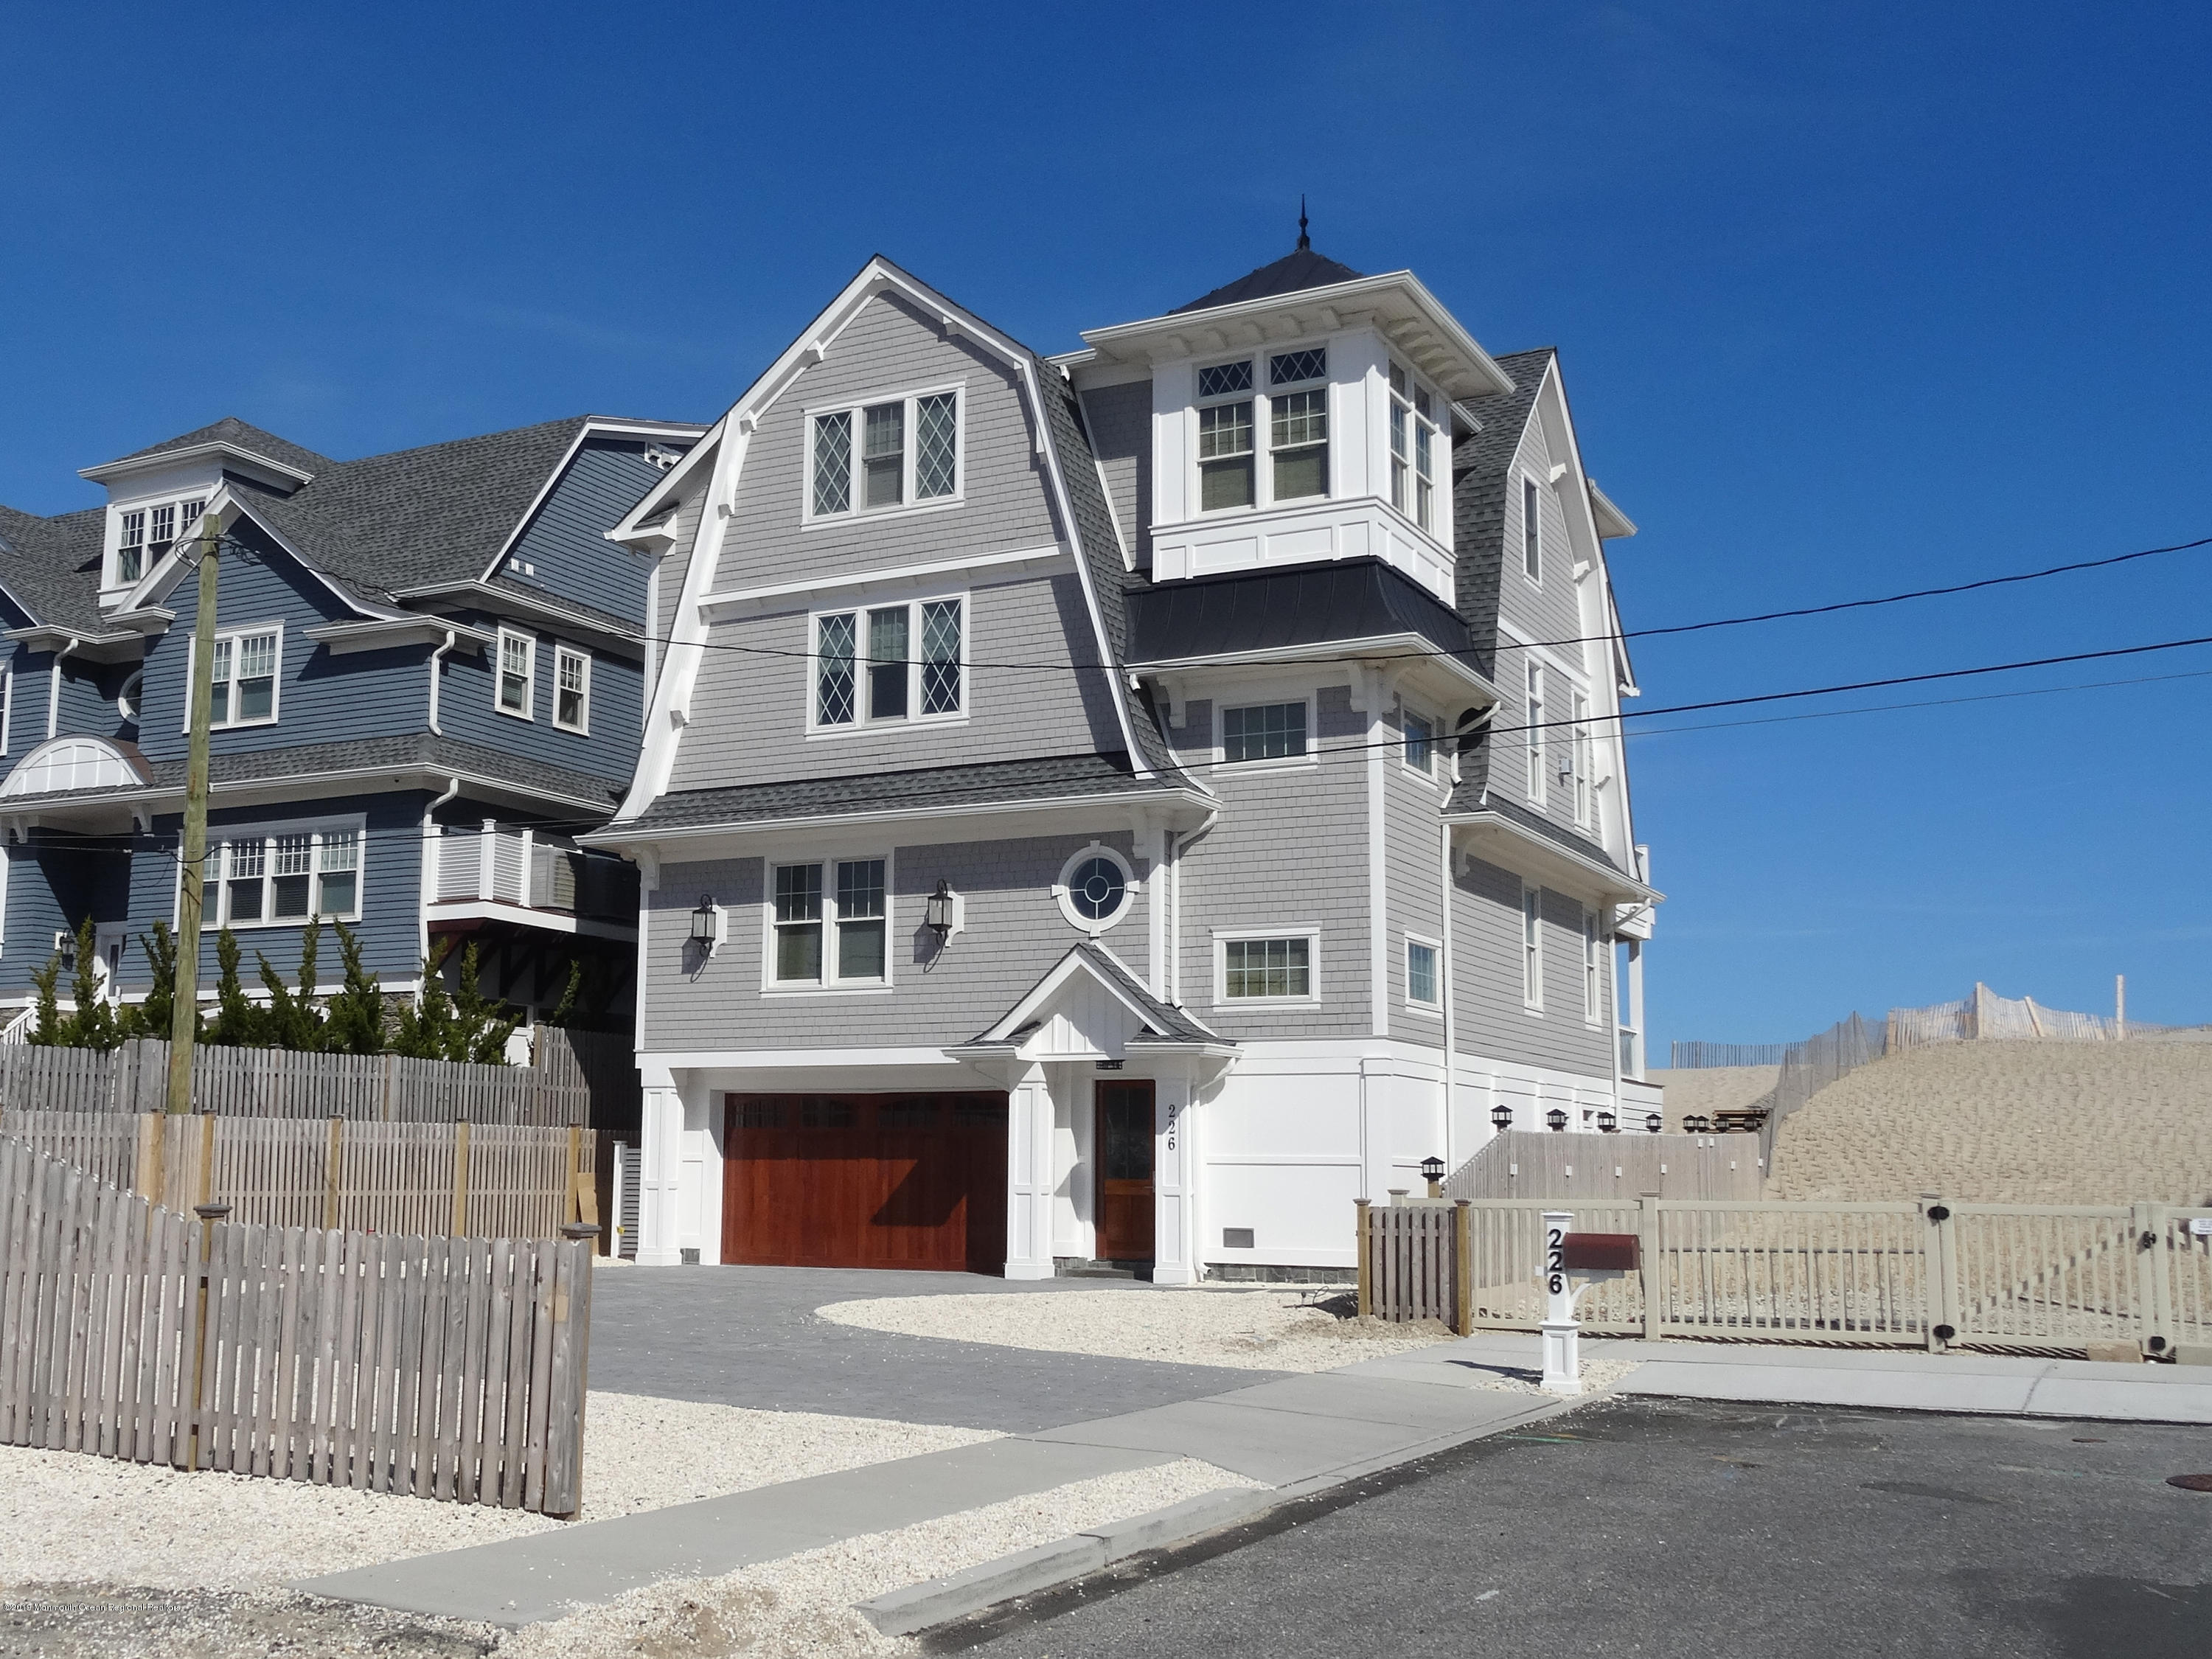 Photo of 226 Dune Avenue, Mantoloking, NJ 08738